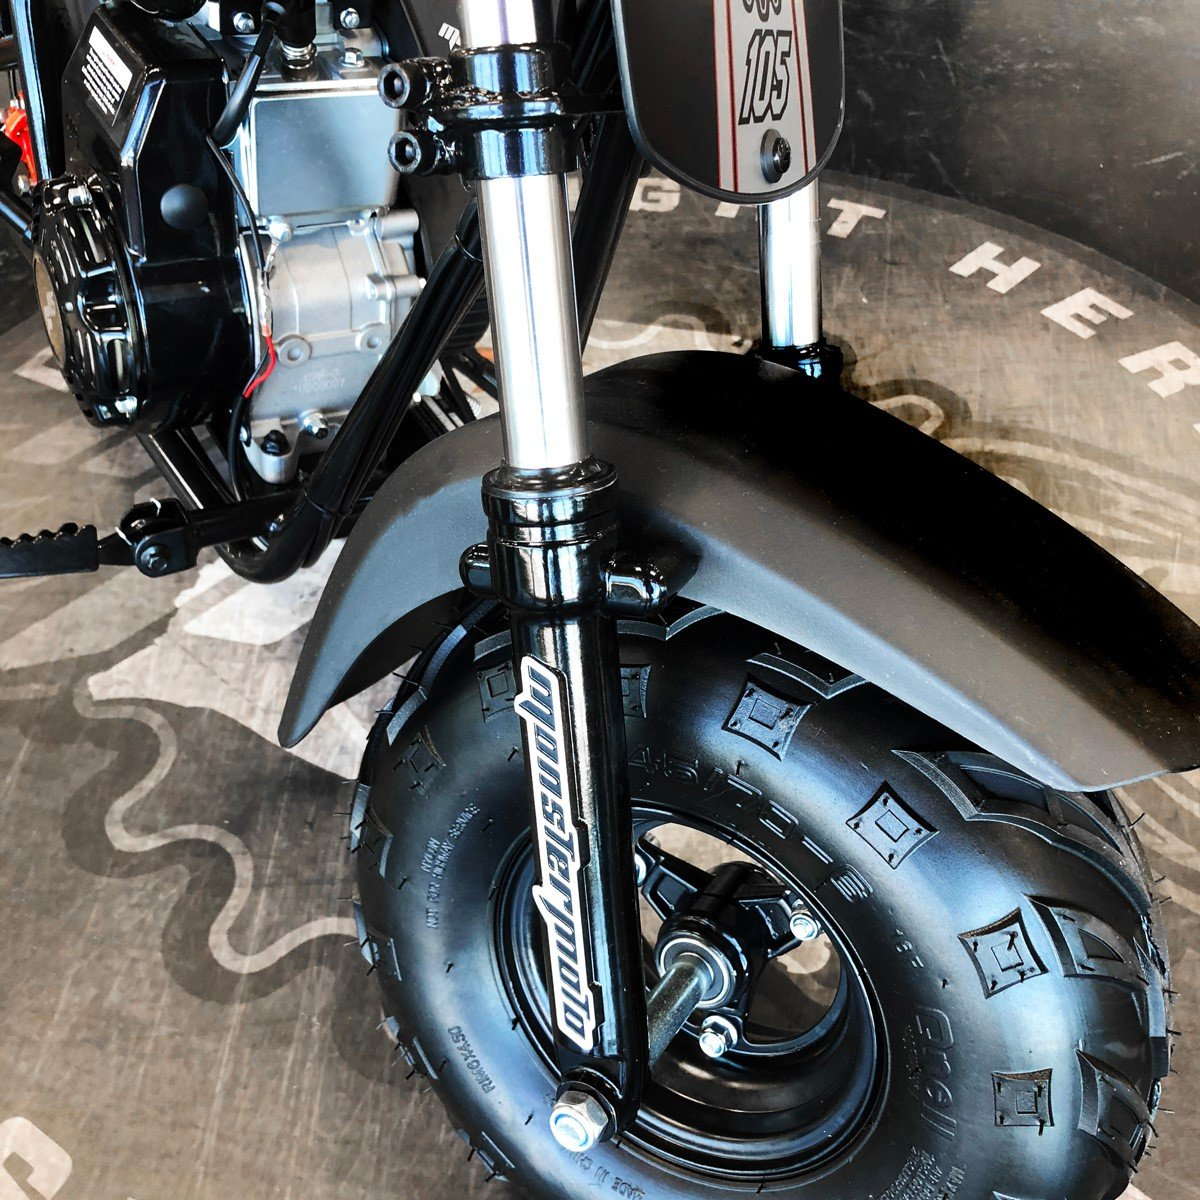 Monster Moto Limited Edition Black on Silver 105CC Mini Bike with Front Suspension-MM-B105-BBX by Monster Moto (Image #5)